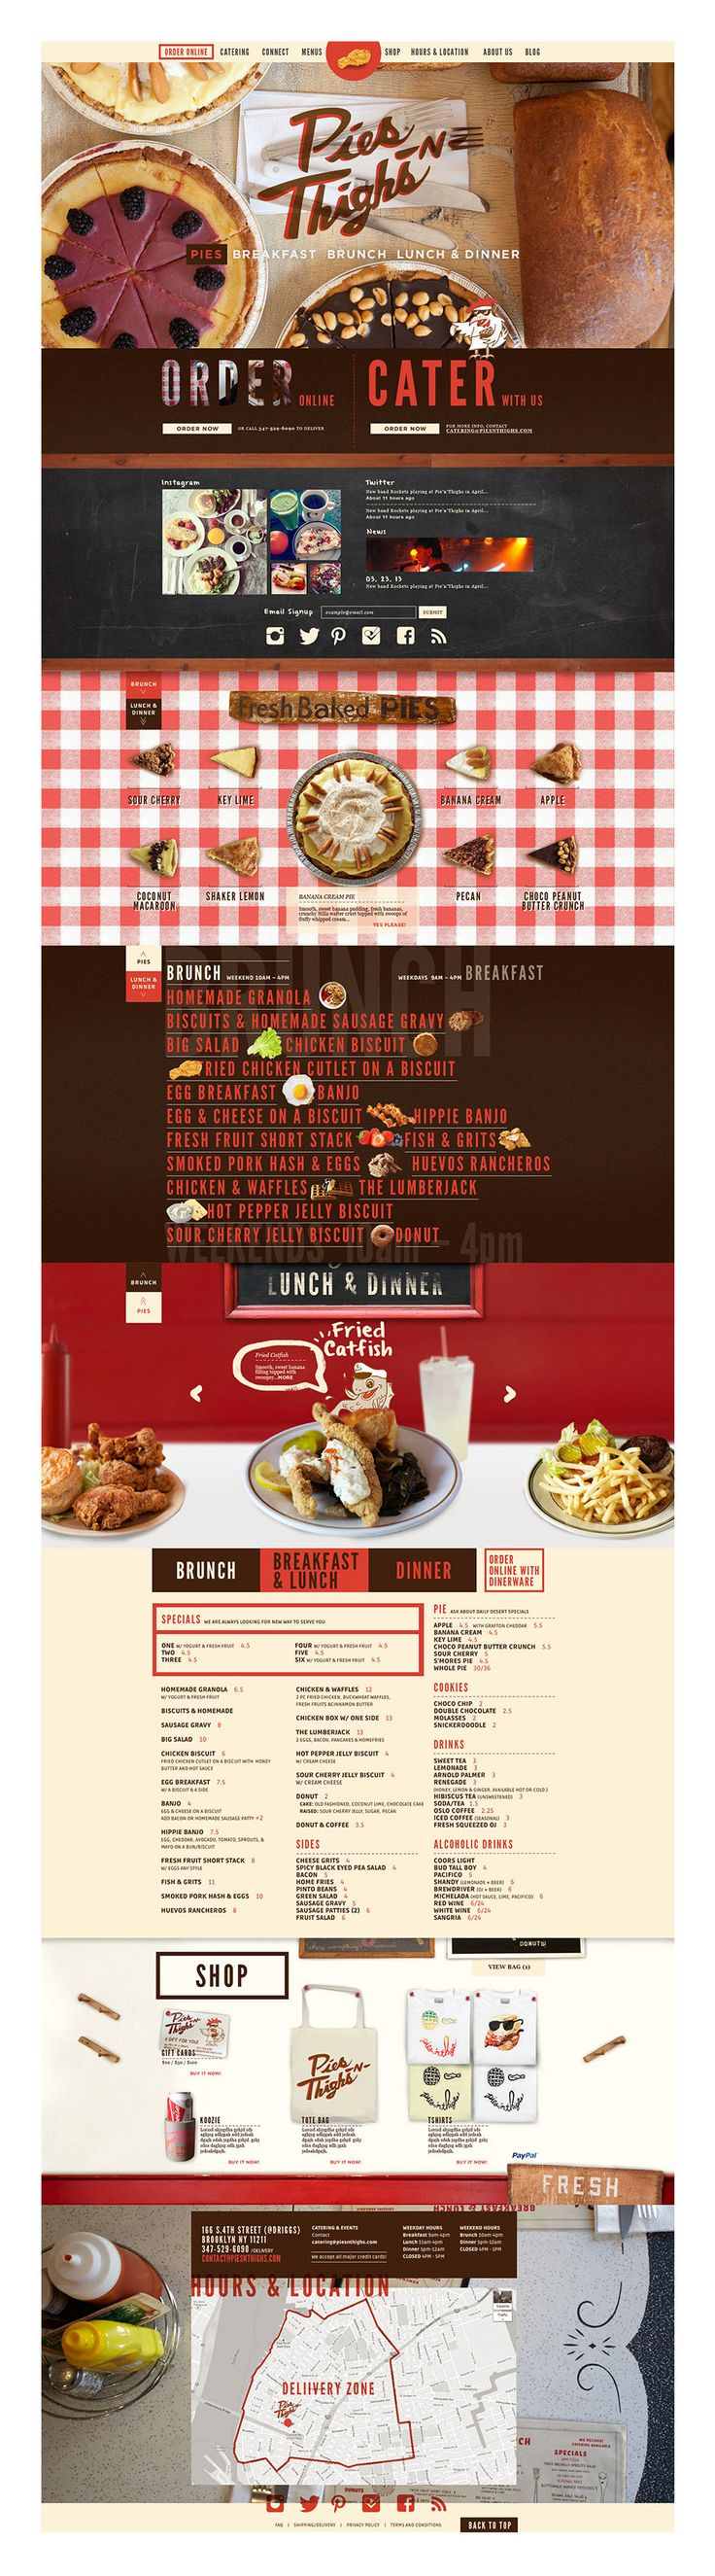 PiesNThighs. Design for a down-home diner with a modern edge. I find it very engaging, hipster without being unappealing or only for a younger crowd. It remains interesting all the way down the page, it's easy to find information, and the information is pleasantly presented/highly legible despite the integration of type and image.